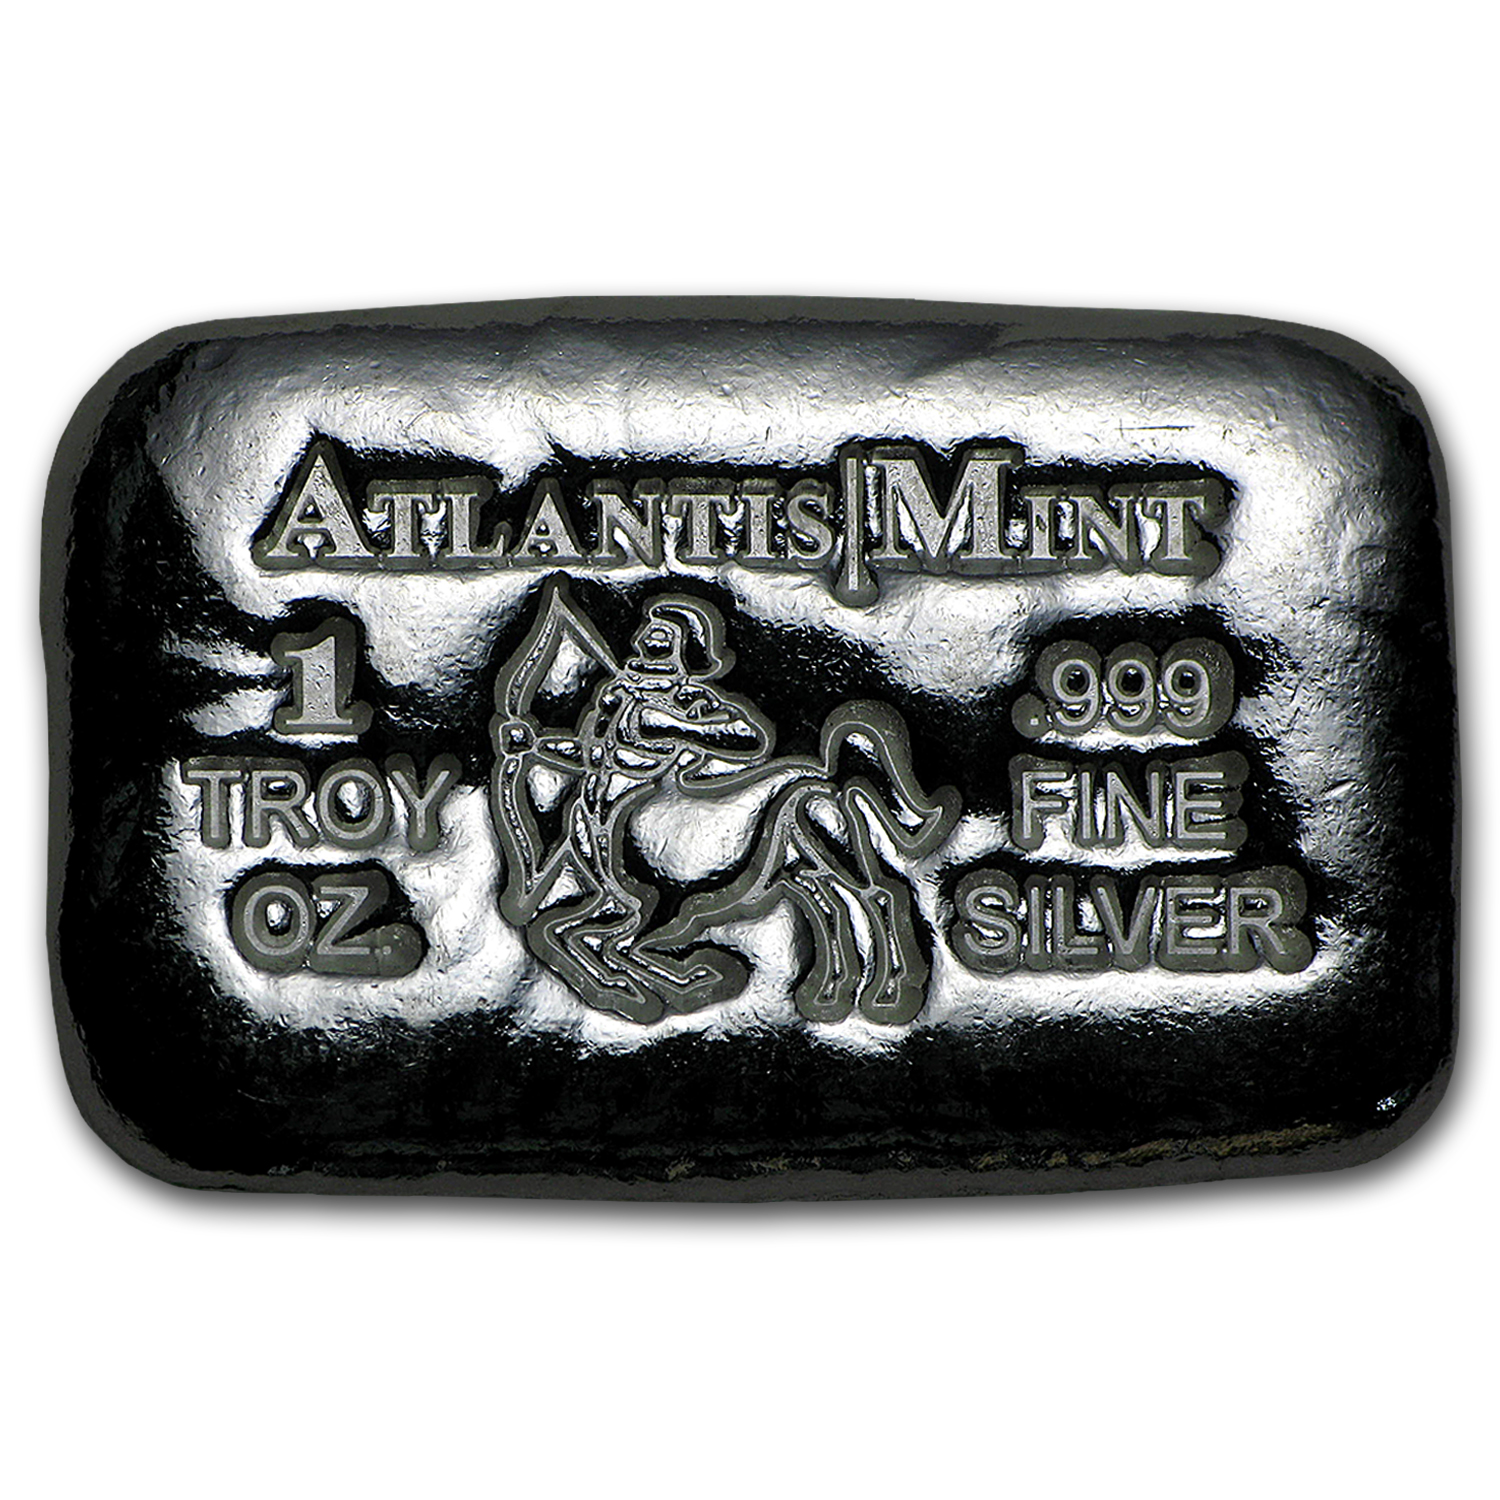 1 oz Silver Bar - Atlantis Mint (Zodiac Series, Sagittarius)